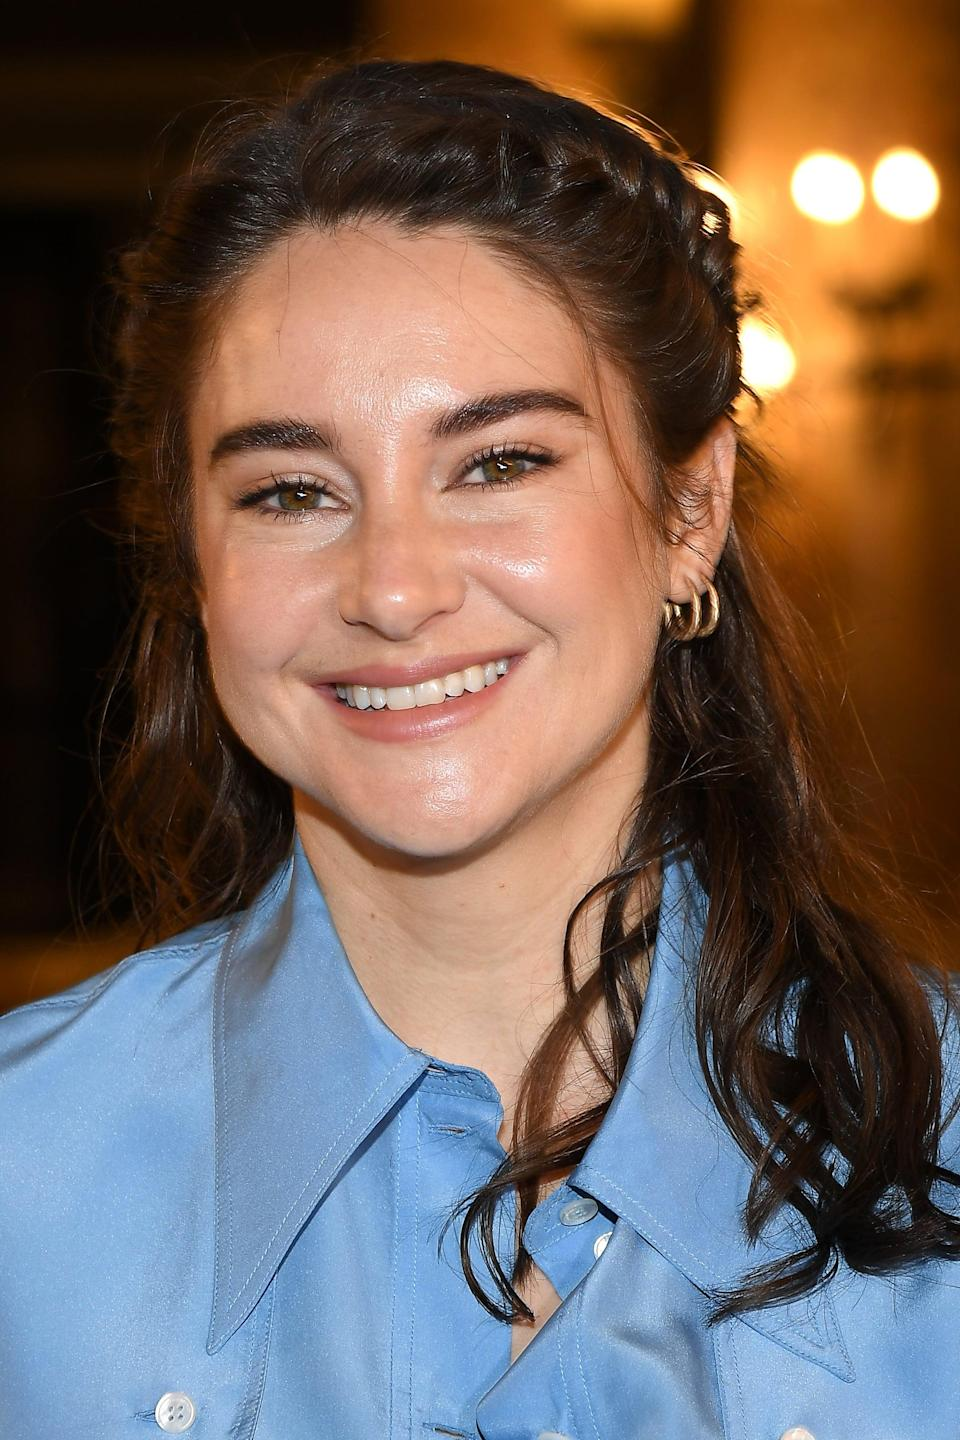 """<p>Shailene knows it all moved a bit fast - partly because they were able to spend tons of quality time together midpandemic - but she believes she """"<a href=""""http://www.shape.com/celebrities/interviews/shailene-woodley-interview"""" class=""""link rapid-noclick-resp"""" rel=""""nofollow noopener"""" target=""""_blank"""" data-ylk=""""slk:would have met Aaron in any context"""">would have met Aaron in any context</a>, any space in time, because I feel we were meant to be together."""" The <strong>Big Little Lies</strong> actress told <strong>Shape</strong> that they """"jumped in headfirst,"""" moving in together after a short time of dating. Looking back, she explained it allowed them to get """"some of the sticky bits out of the way early.""""</p>"""